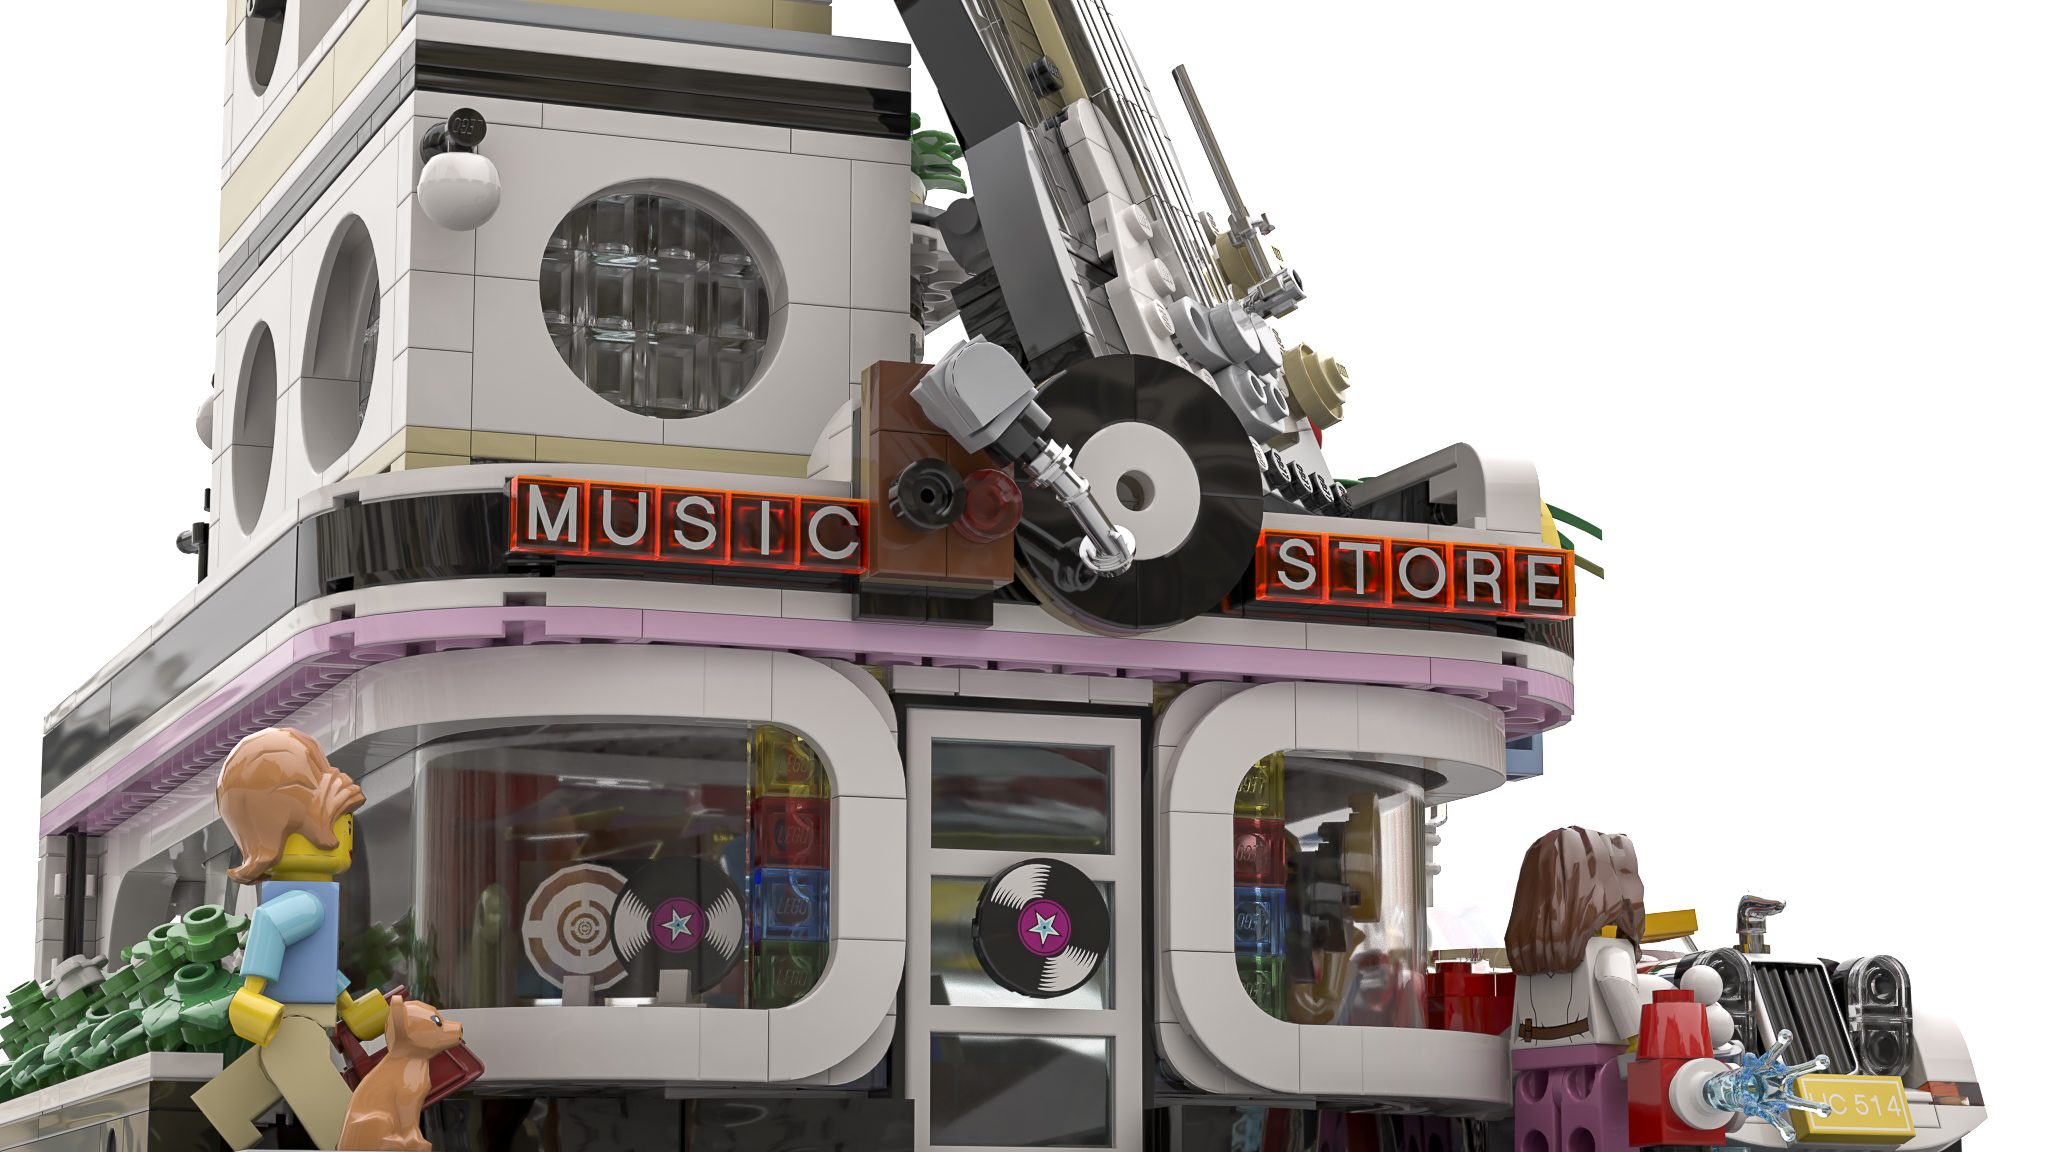 lego-ideas-the-car-wash-e-gitarre-music-store-logo-bricky-brick zusammengebaut.com